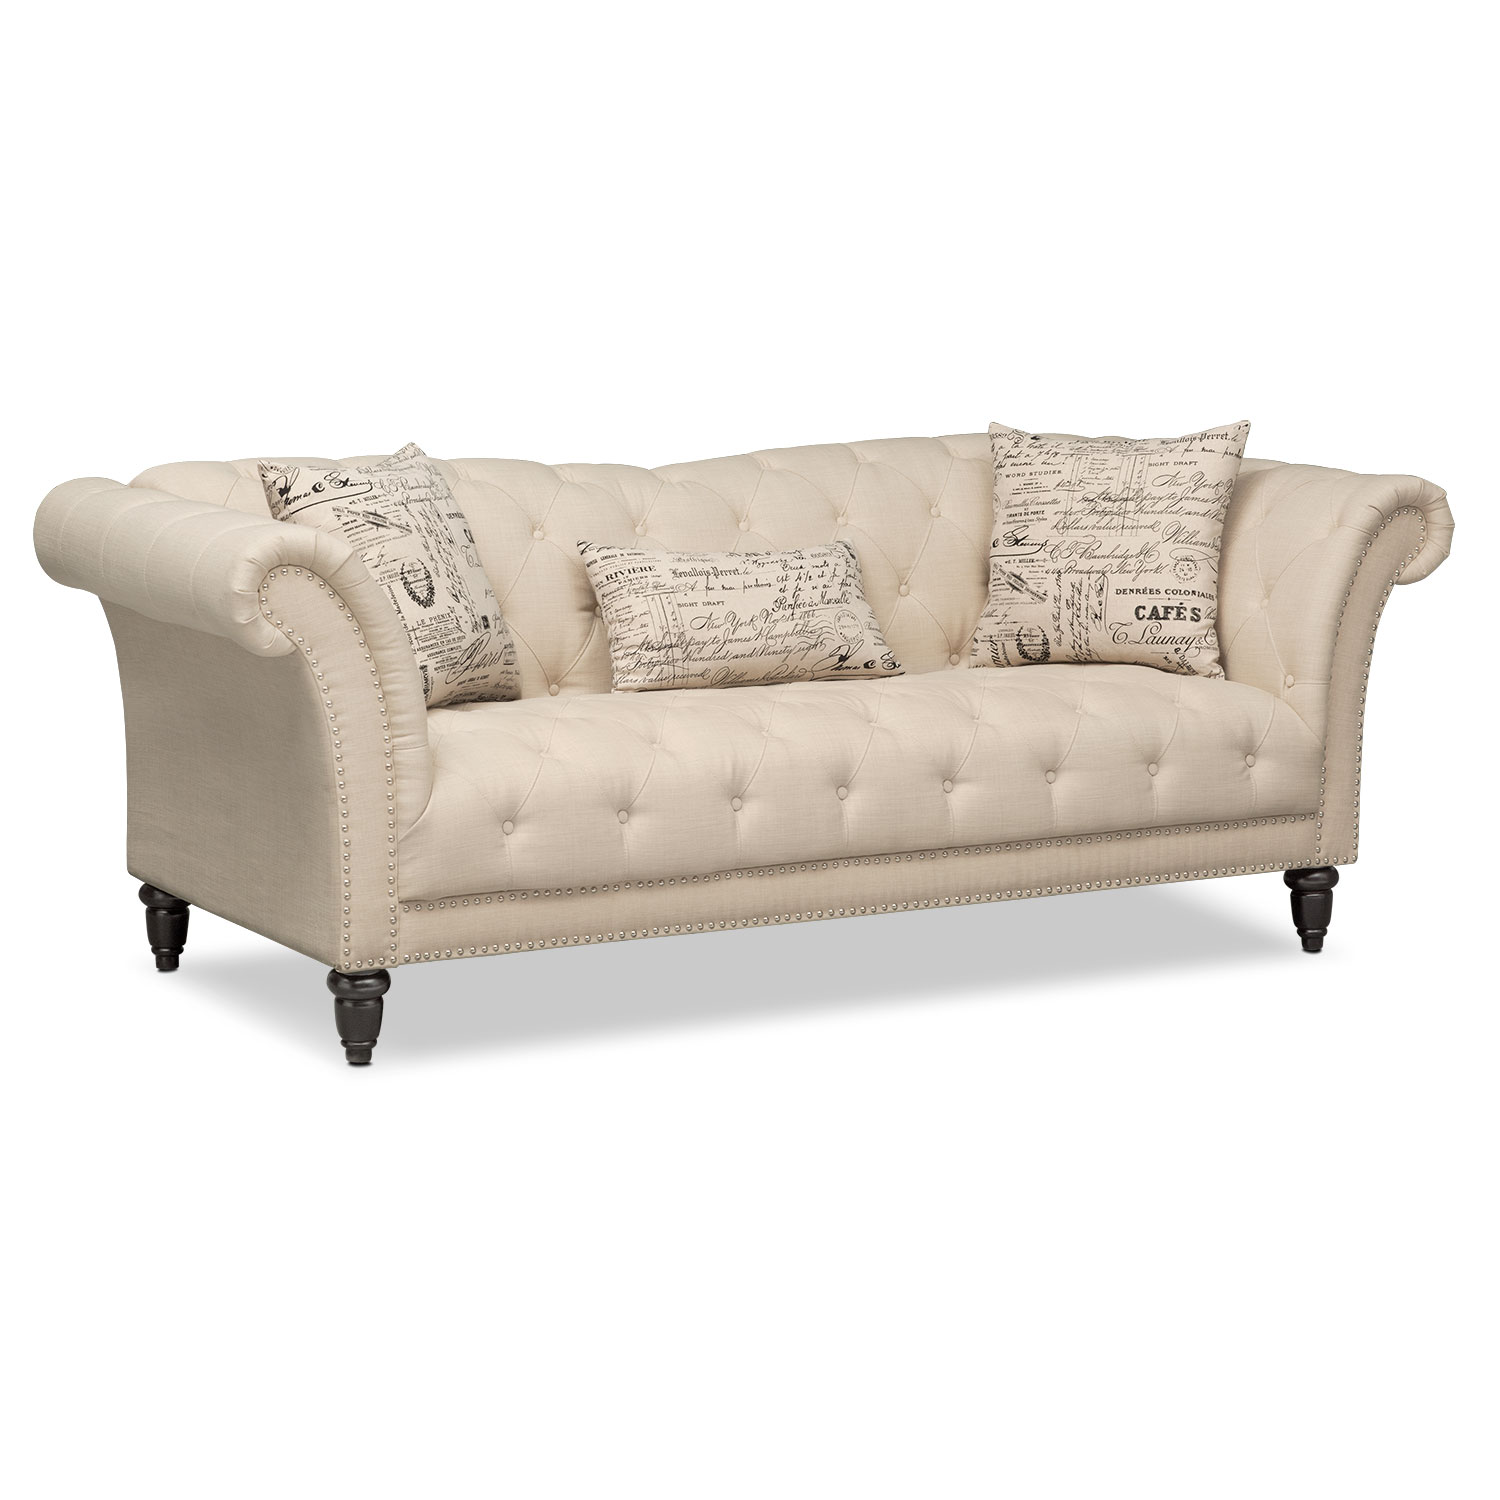 Marisol sofa beige american signature furniture for Signature furniture